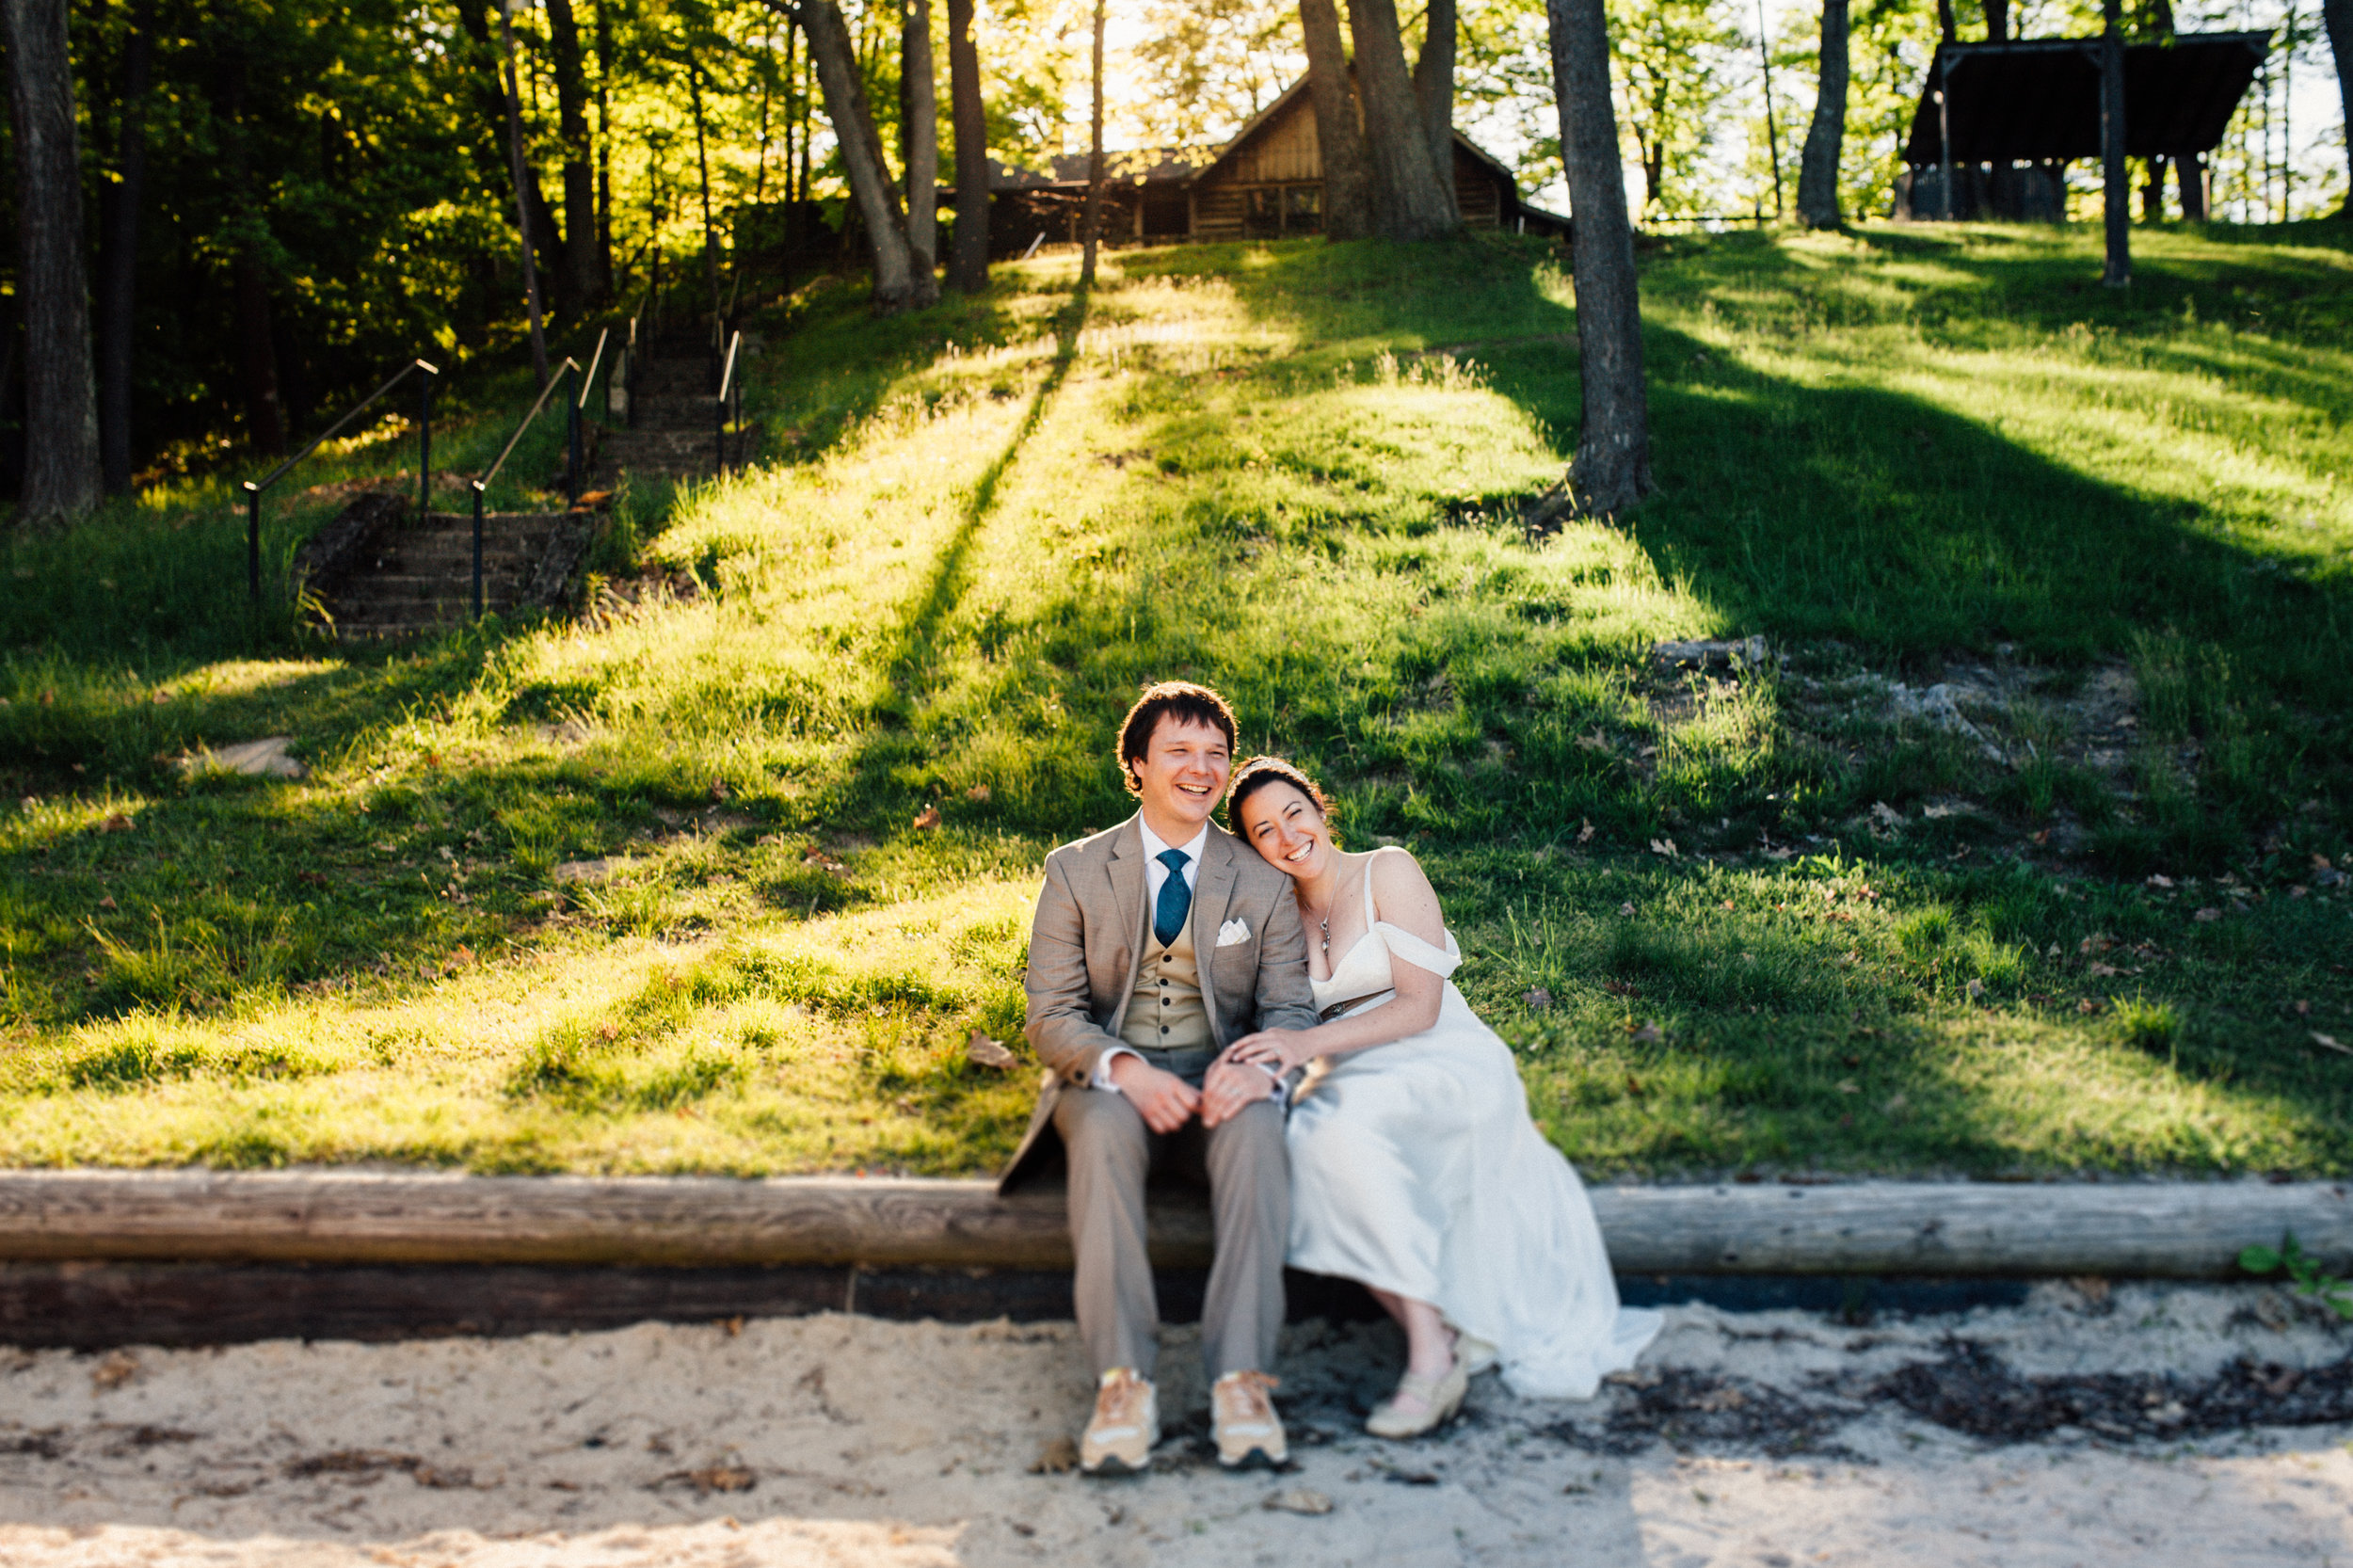 WEST-VIRGINIA-CAMPWEDDING-WEDDING-PHOTOGRAPHY-PANGTOGRAPHY